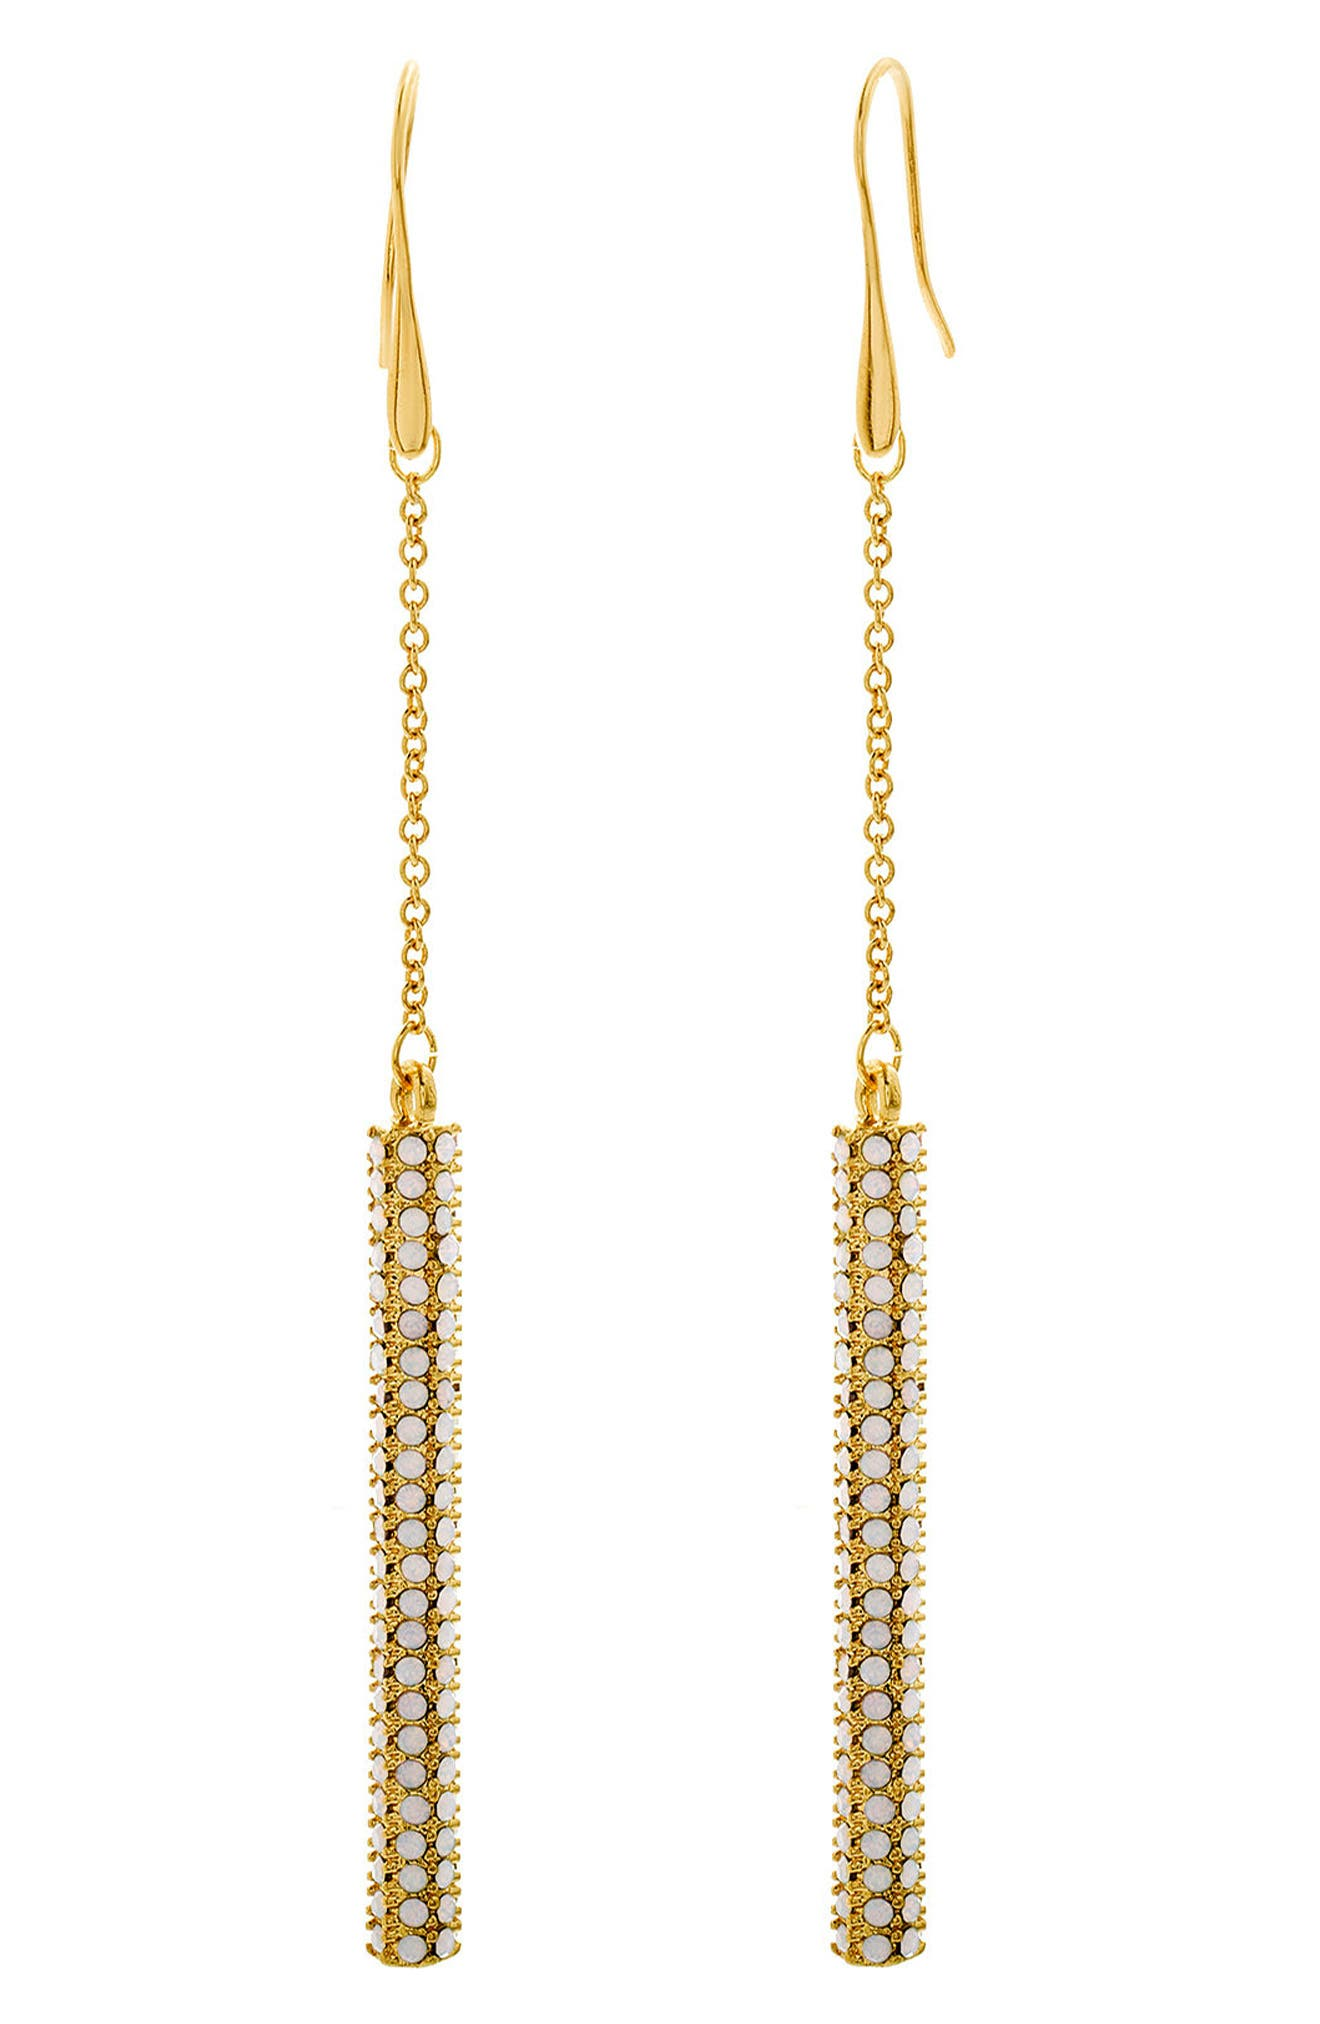 Rolo Crystal Bar Statement Earrings,                             Main thumbnail 1, color,                             Gold